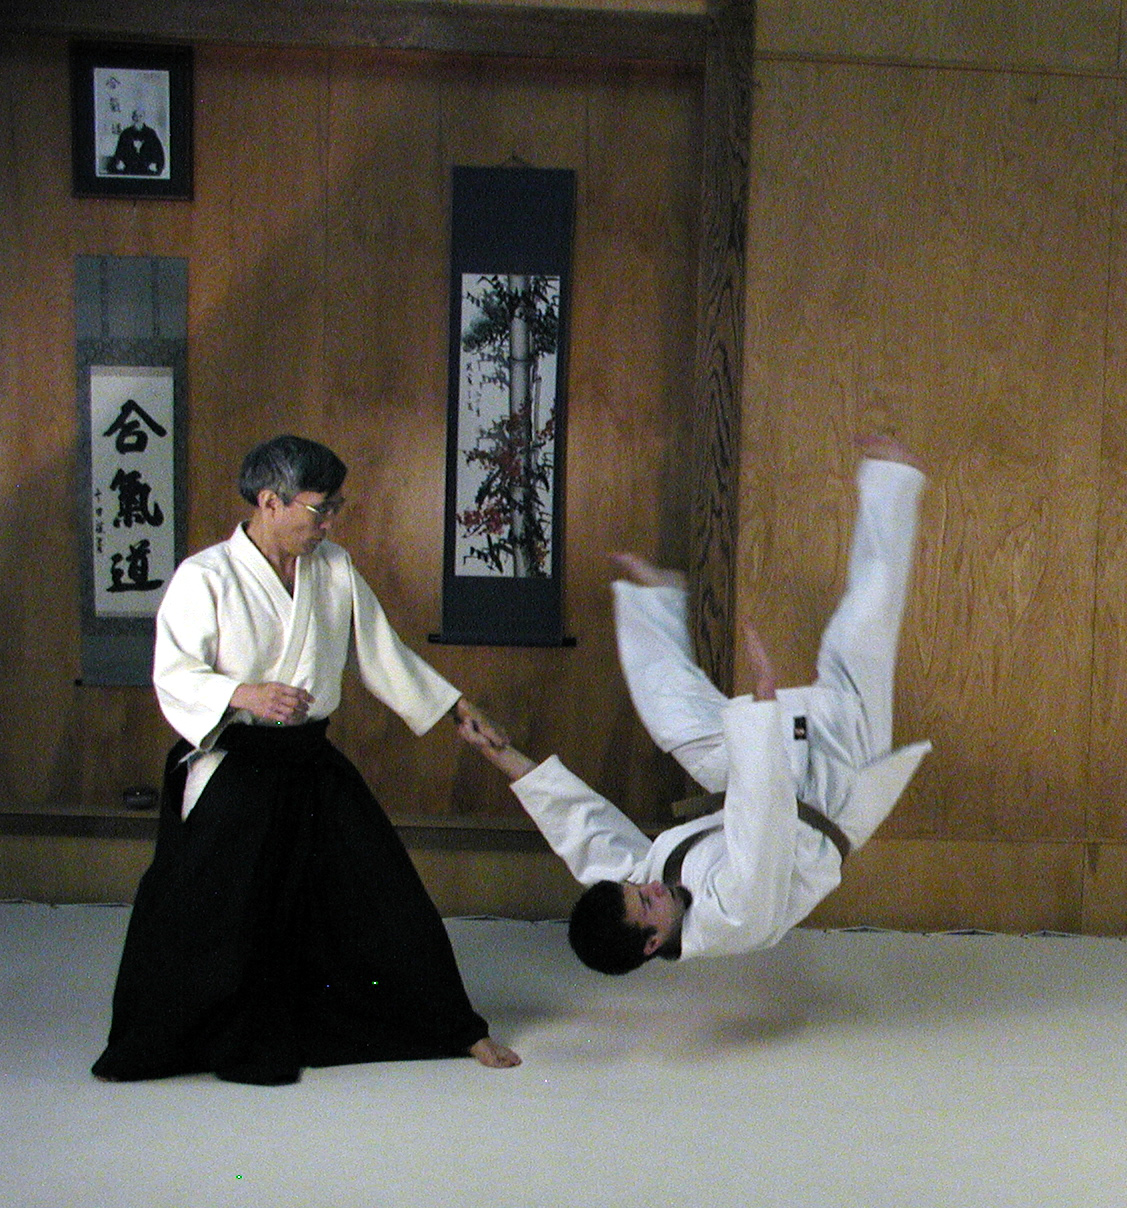 aikido-plr-articles